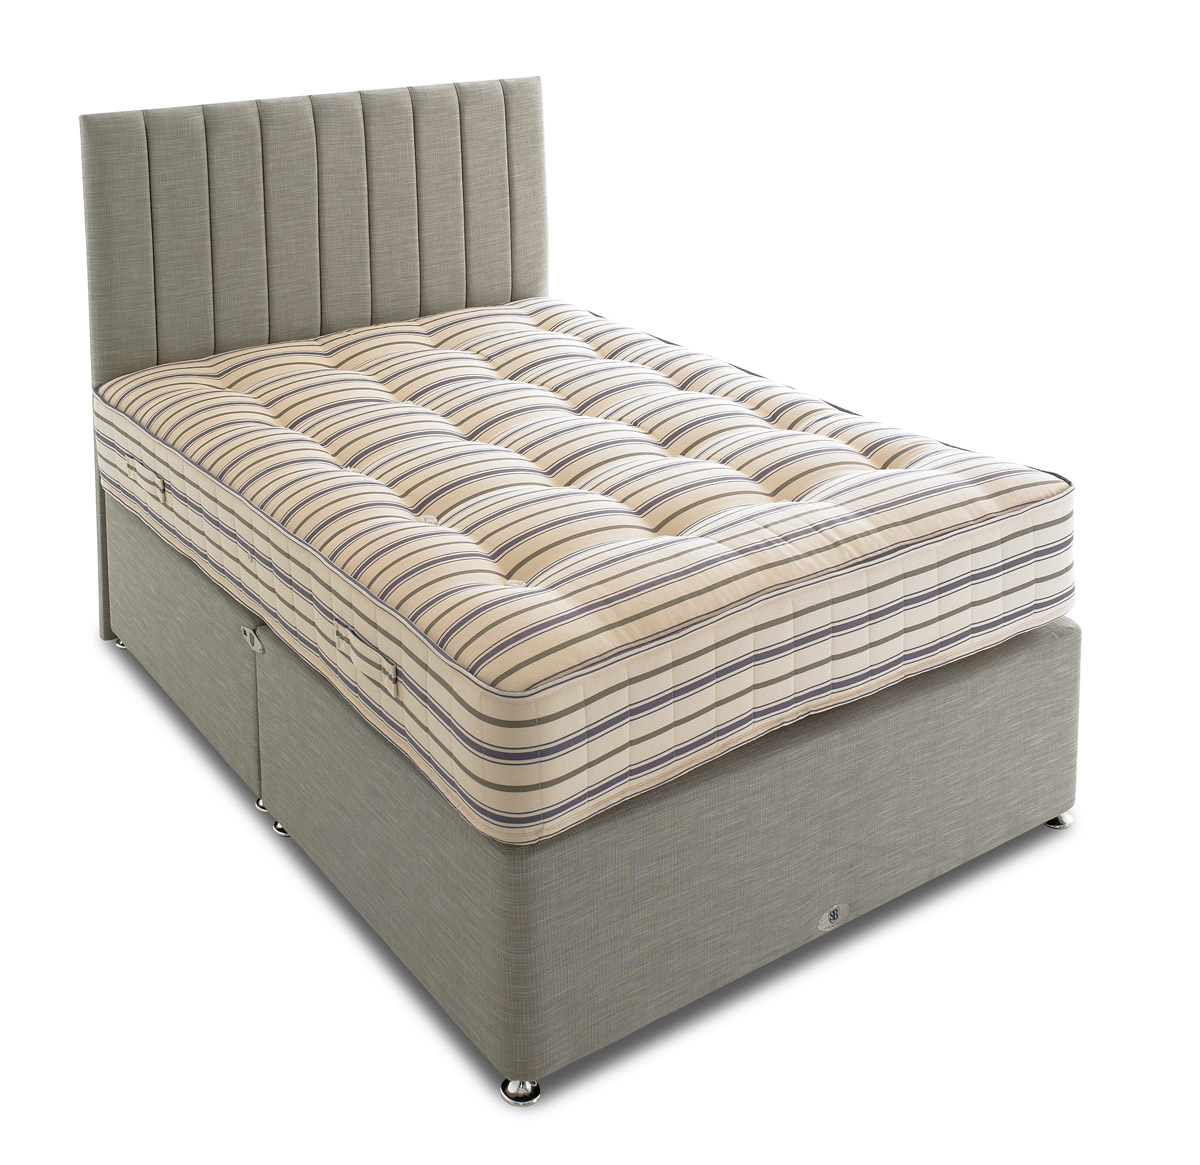 Hotel Supreme 2000 Pocket Source 5 Divan Set from £379